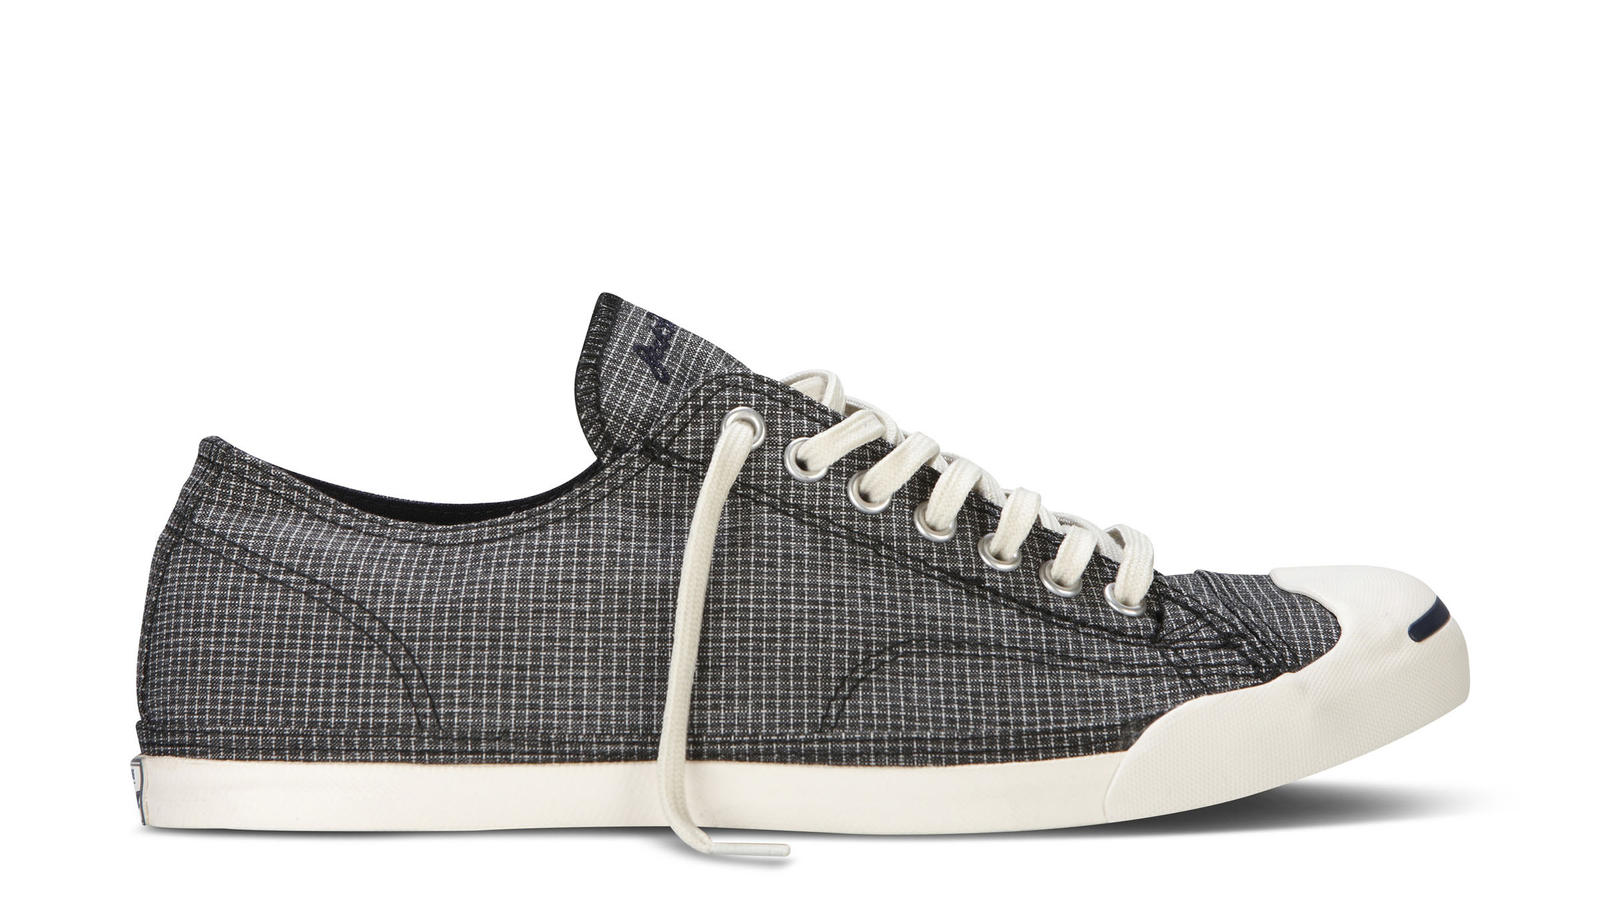 778e79f665 Announcing Fall 2013 Jack Purcell and Converse by John Varvatos ...